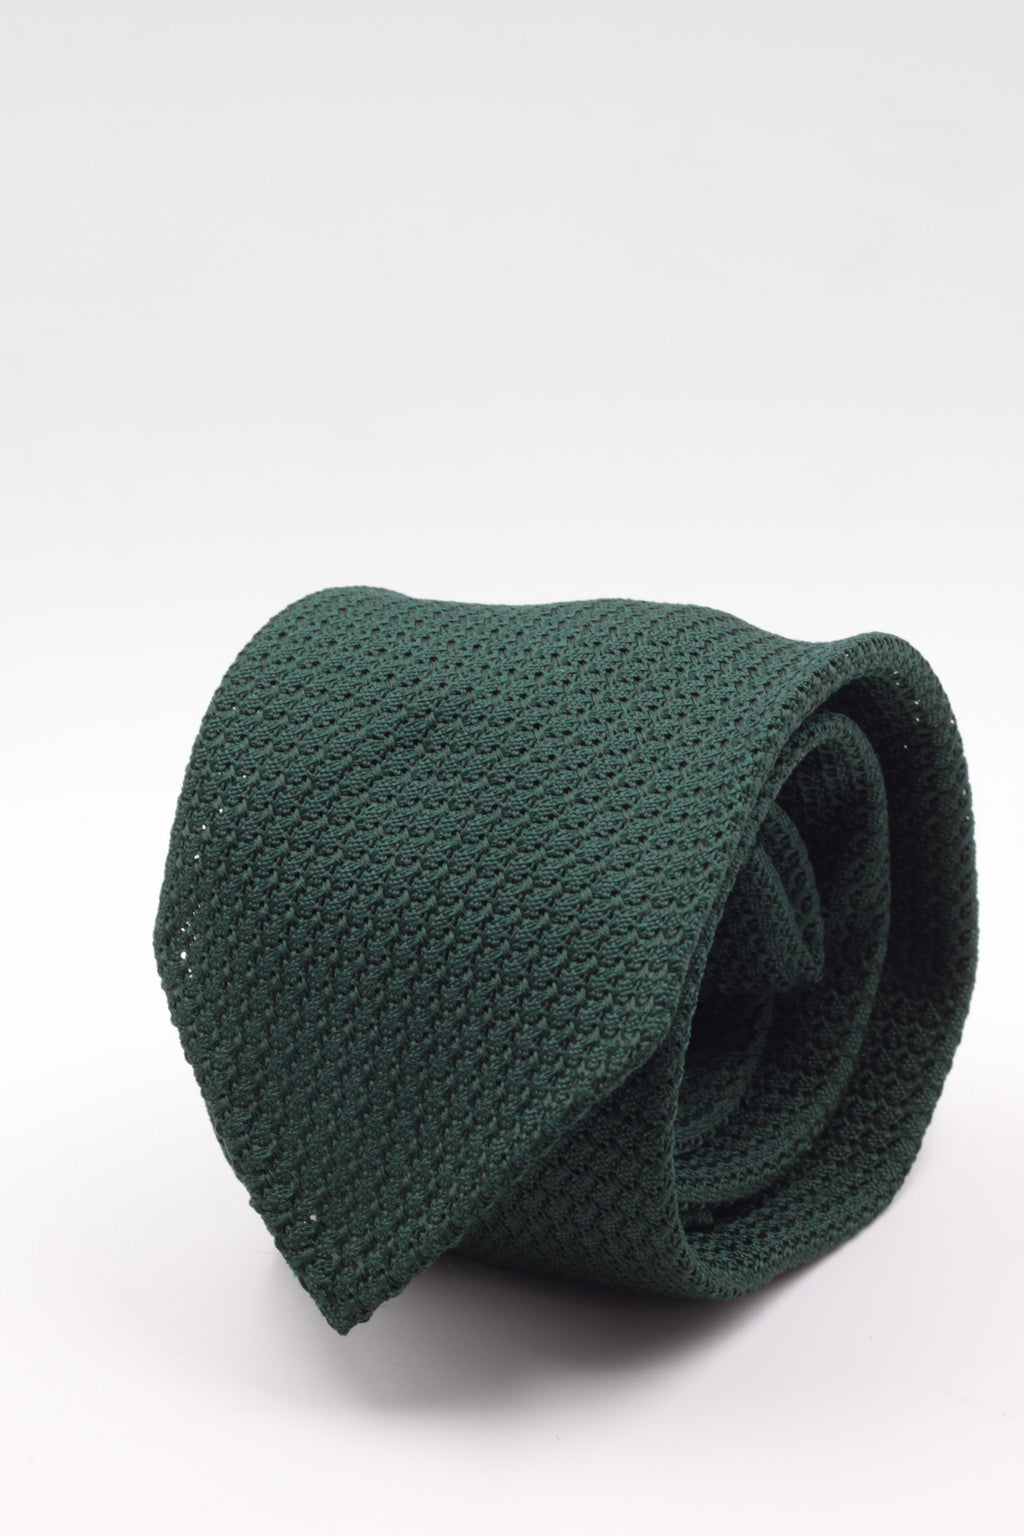 100% Silk Grenadine Garza Grossa Woven in Italy Unlined Bottle green plain  tie Handmade in Italy 8 cm x 150 cm